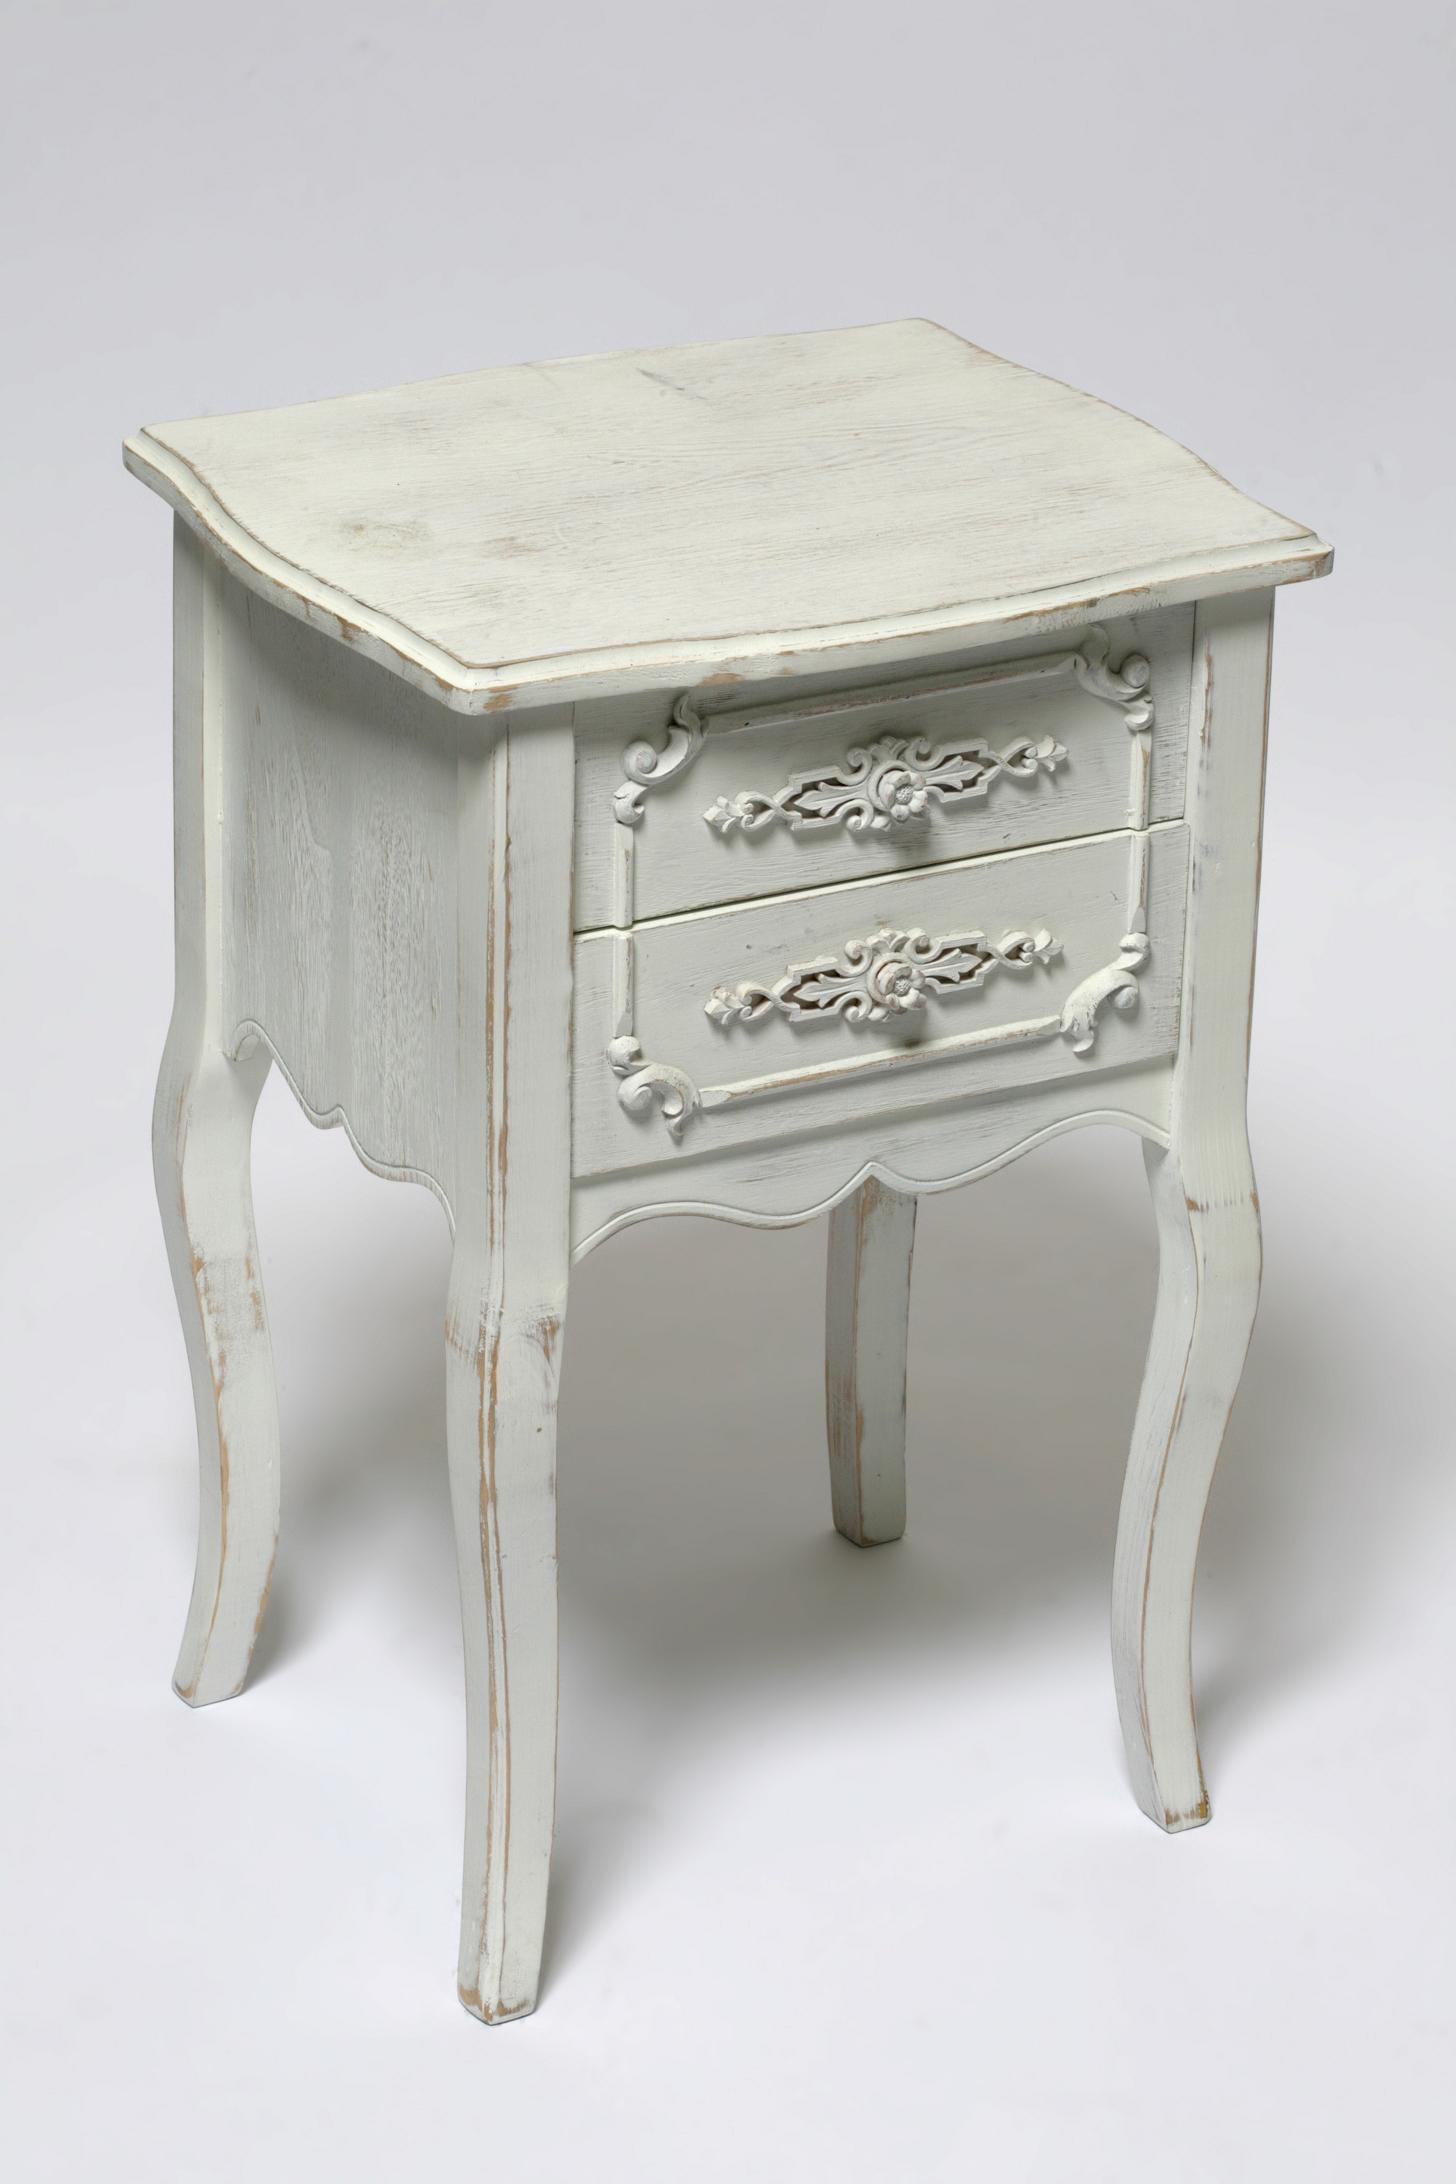 likable narrow end tables for bedroom study small accent sets target table stands ideas dressing glass designs master dimensions round side furniture writing little and chair olx